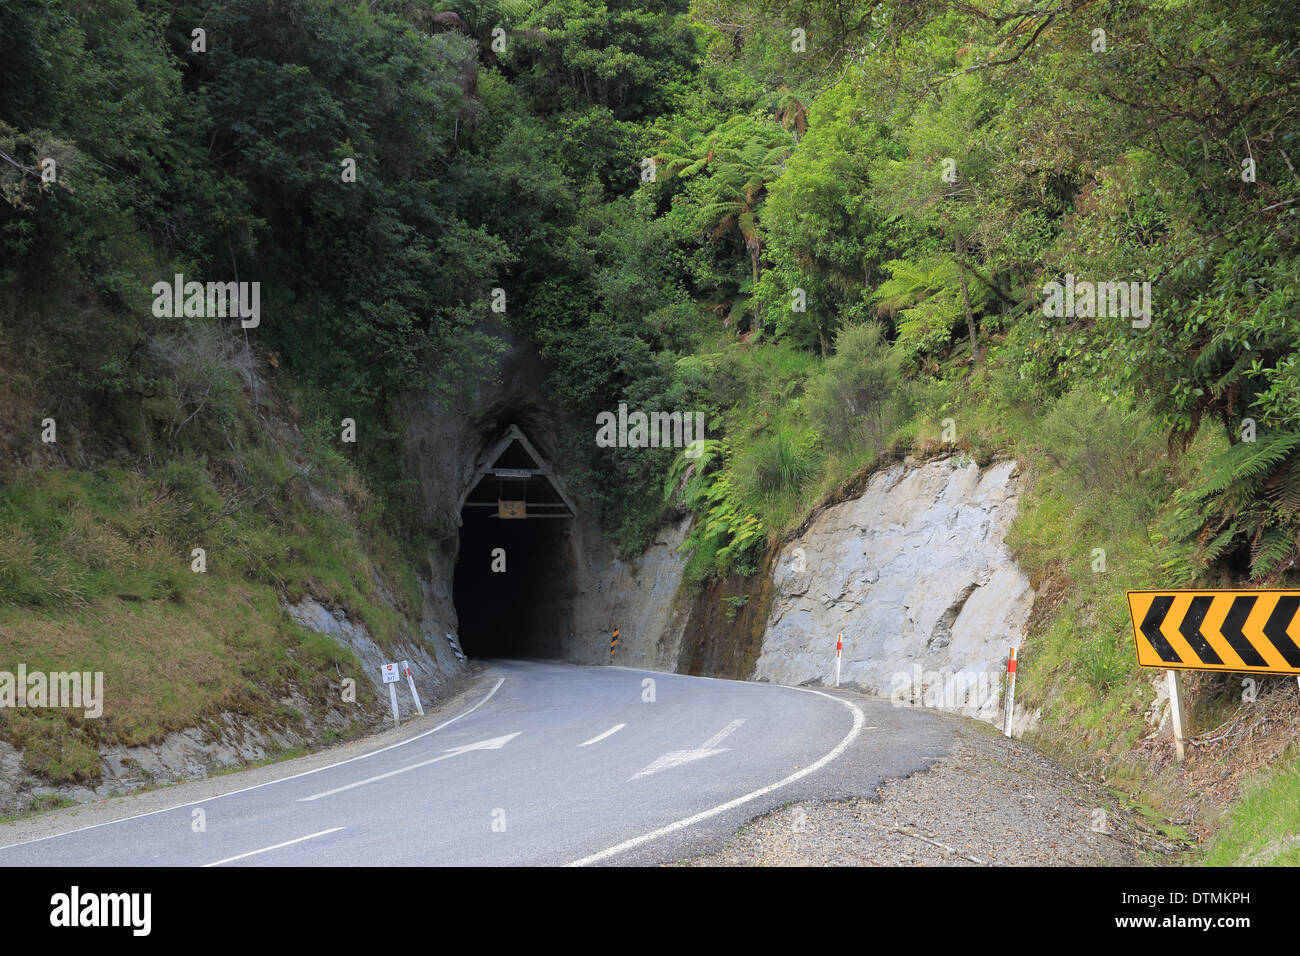 Moki Tunnel part of the Forgotten World Highway (SH 43), Whanganui National Park, North Island, New Zealand - Stock Image